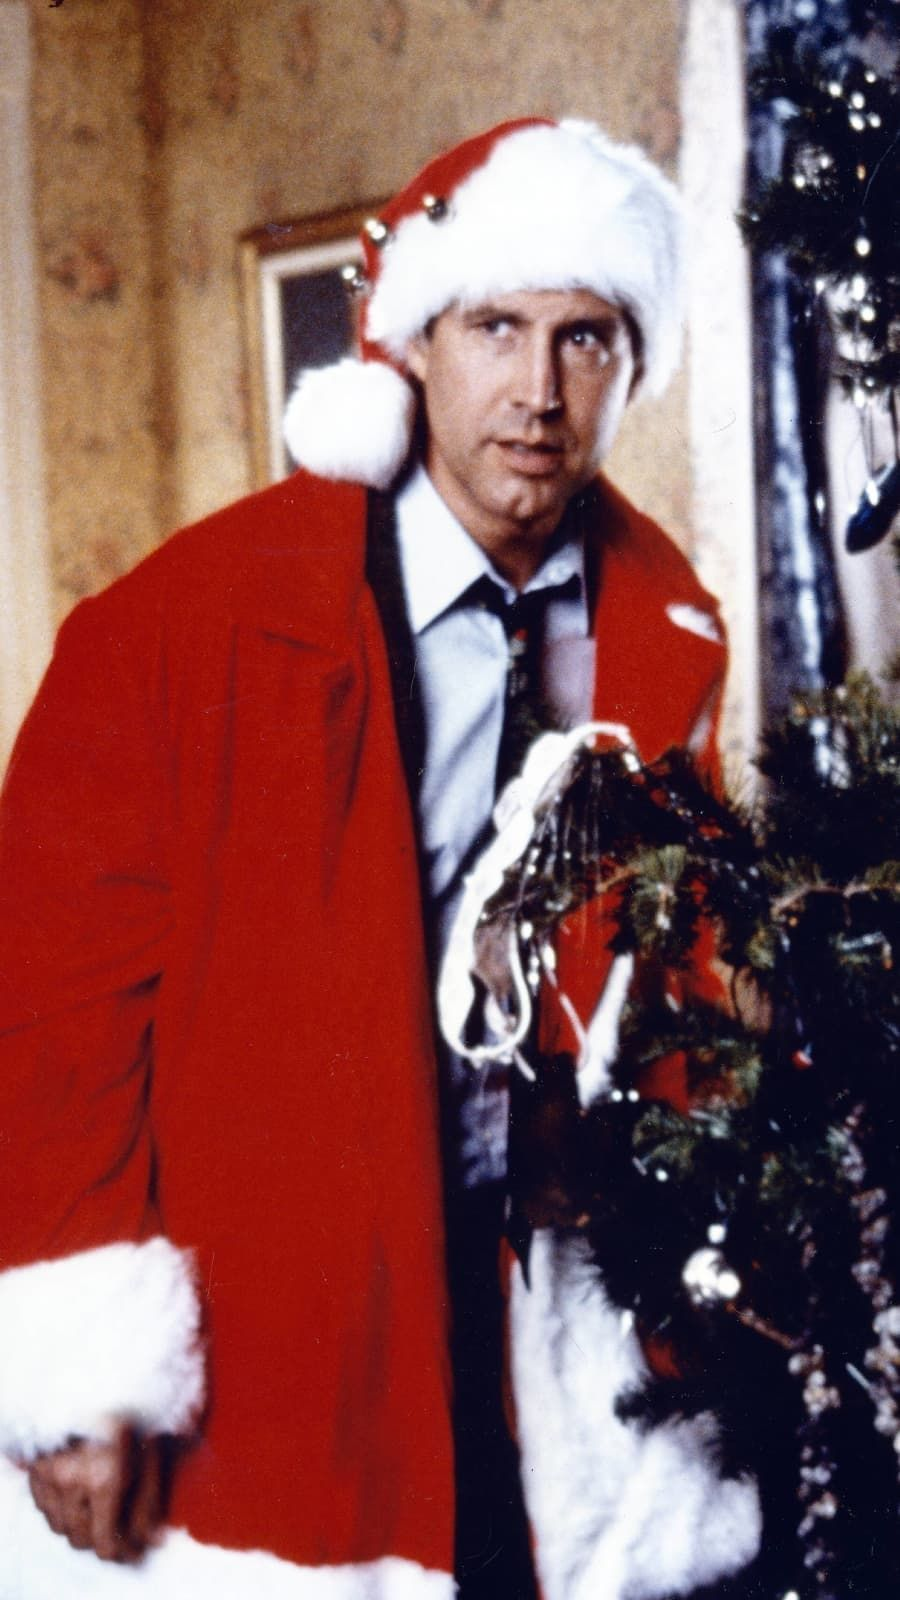 Chevy Chase 'The National Lampoon's Christmas Vacation